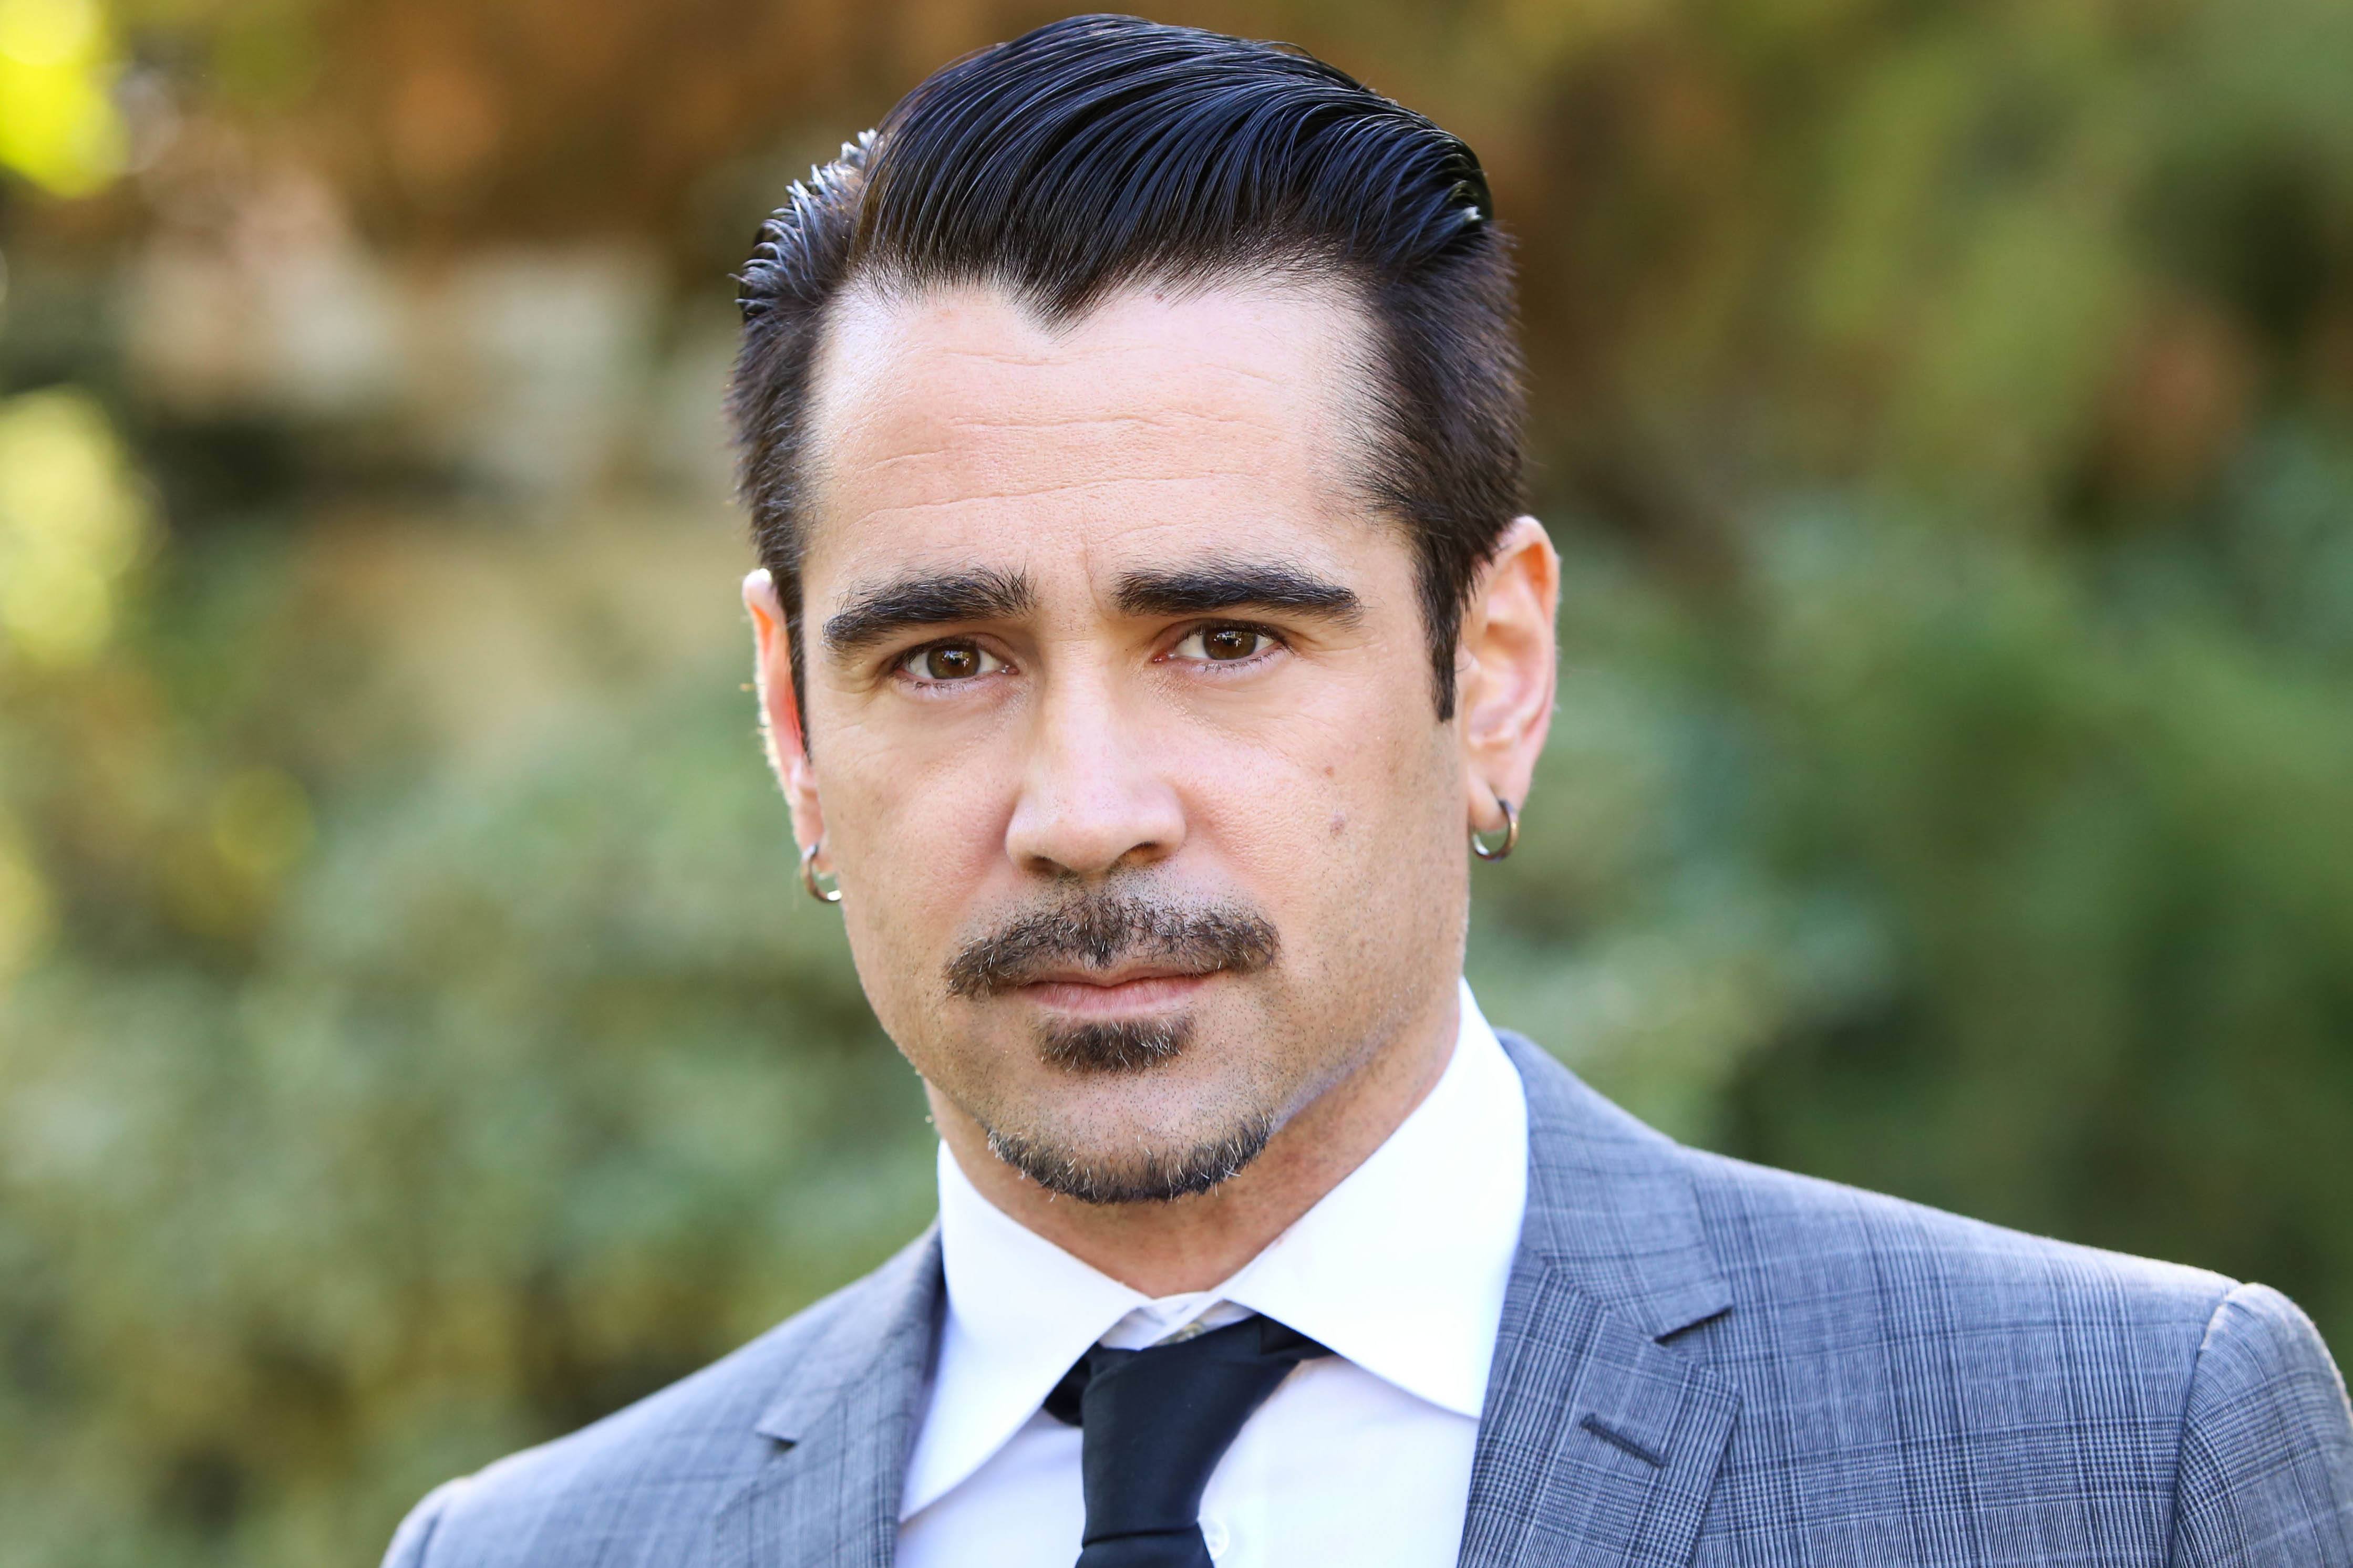 Amazing Colin Farrell Pictures & Backgrounds